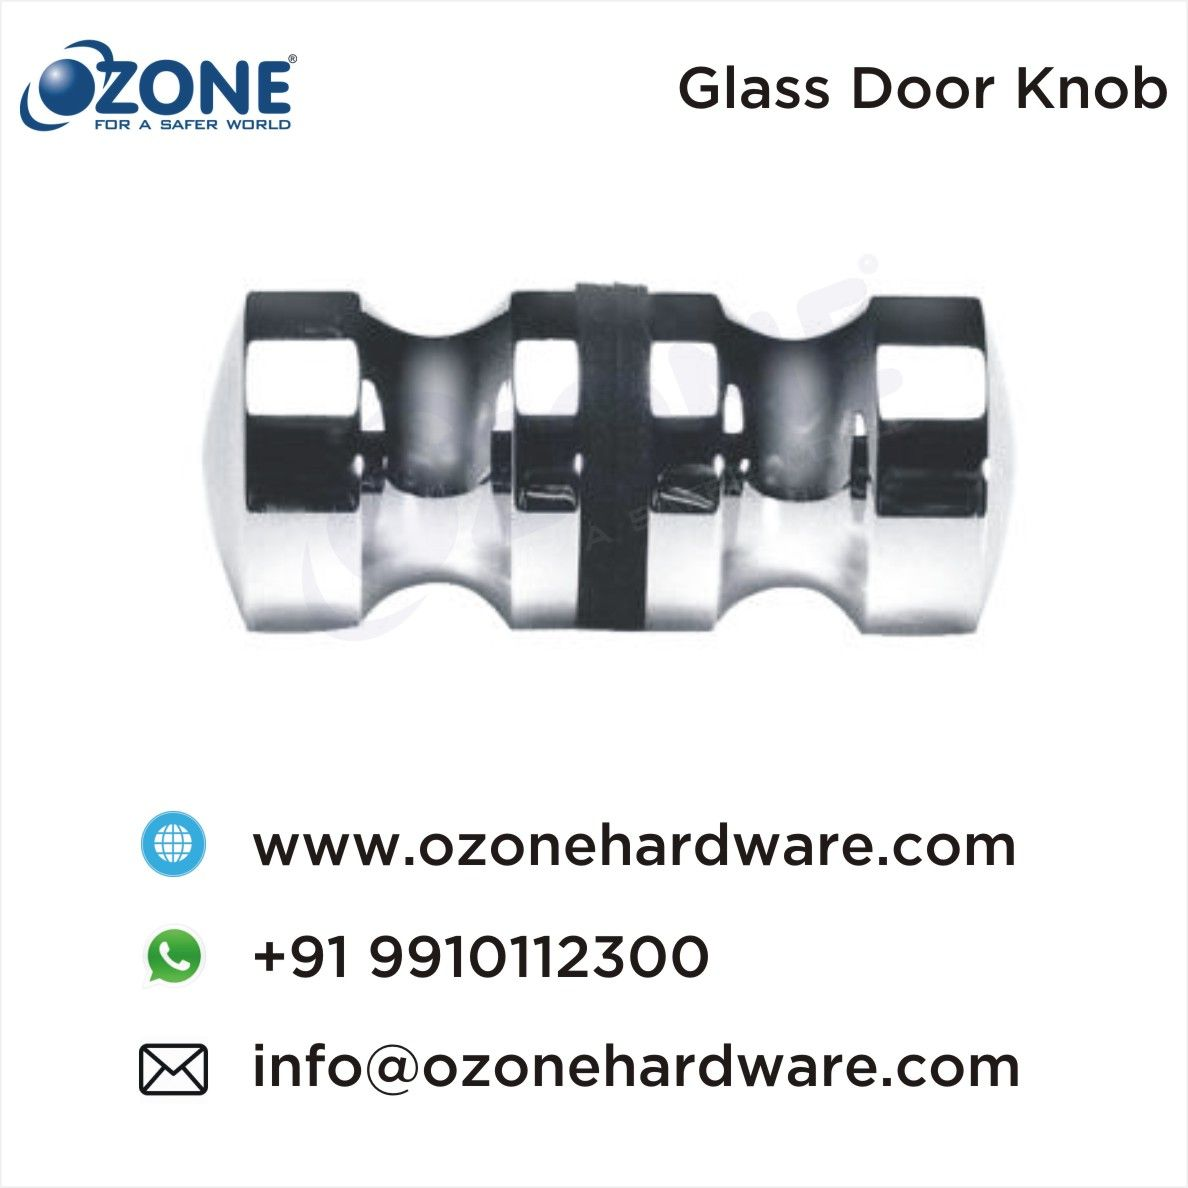 Meuble Salle De Bain Ozone ~ glass door knob door knobs shower cubicles accessories